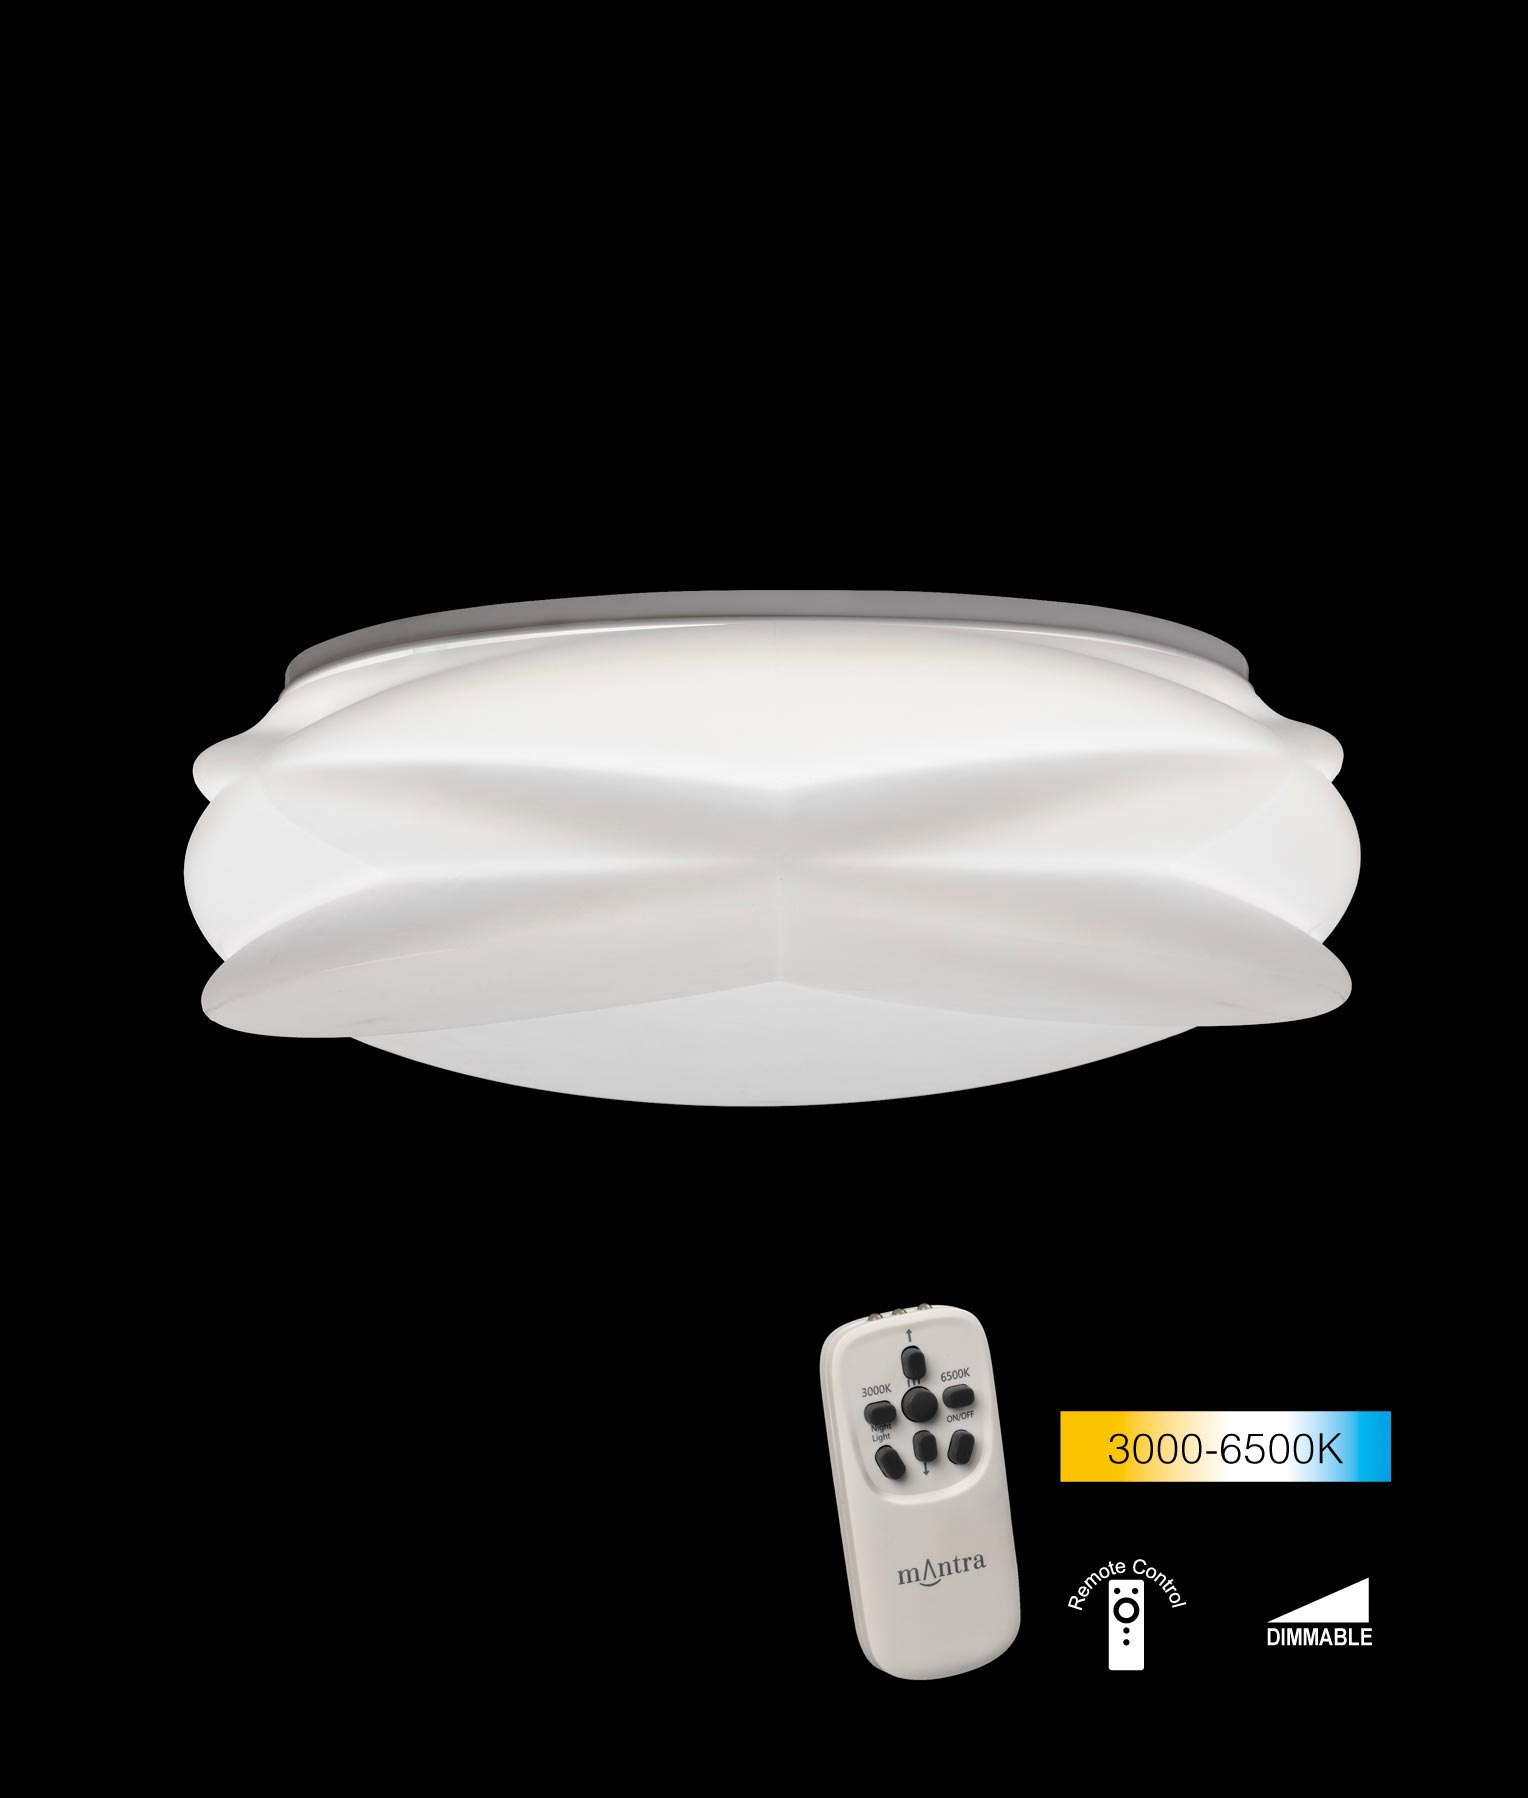 L mpara dimmable mediana lascas led la casa de la l mpara for La casa del led